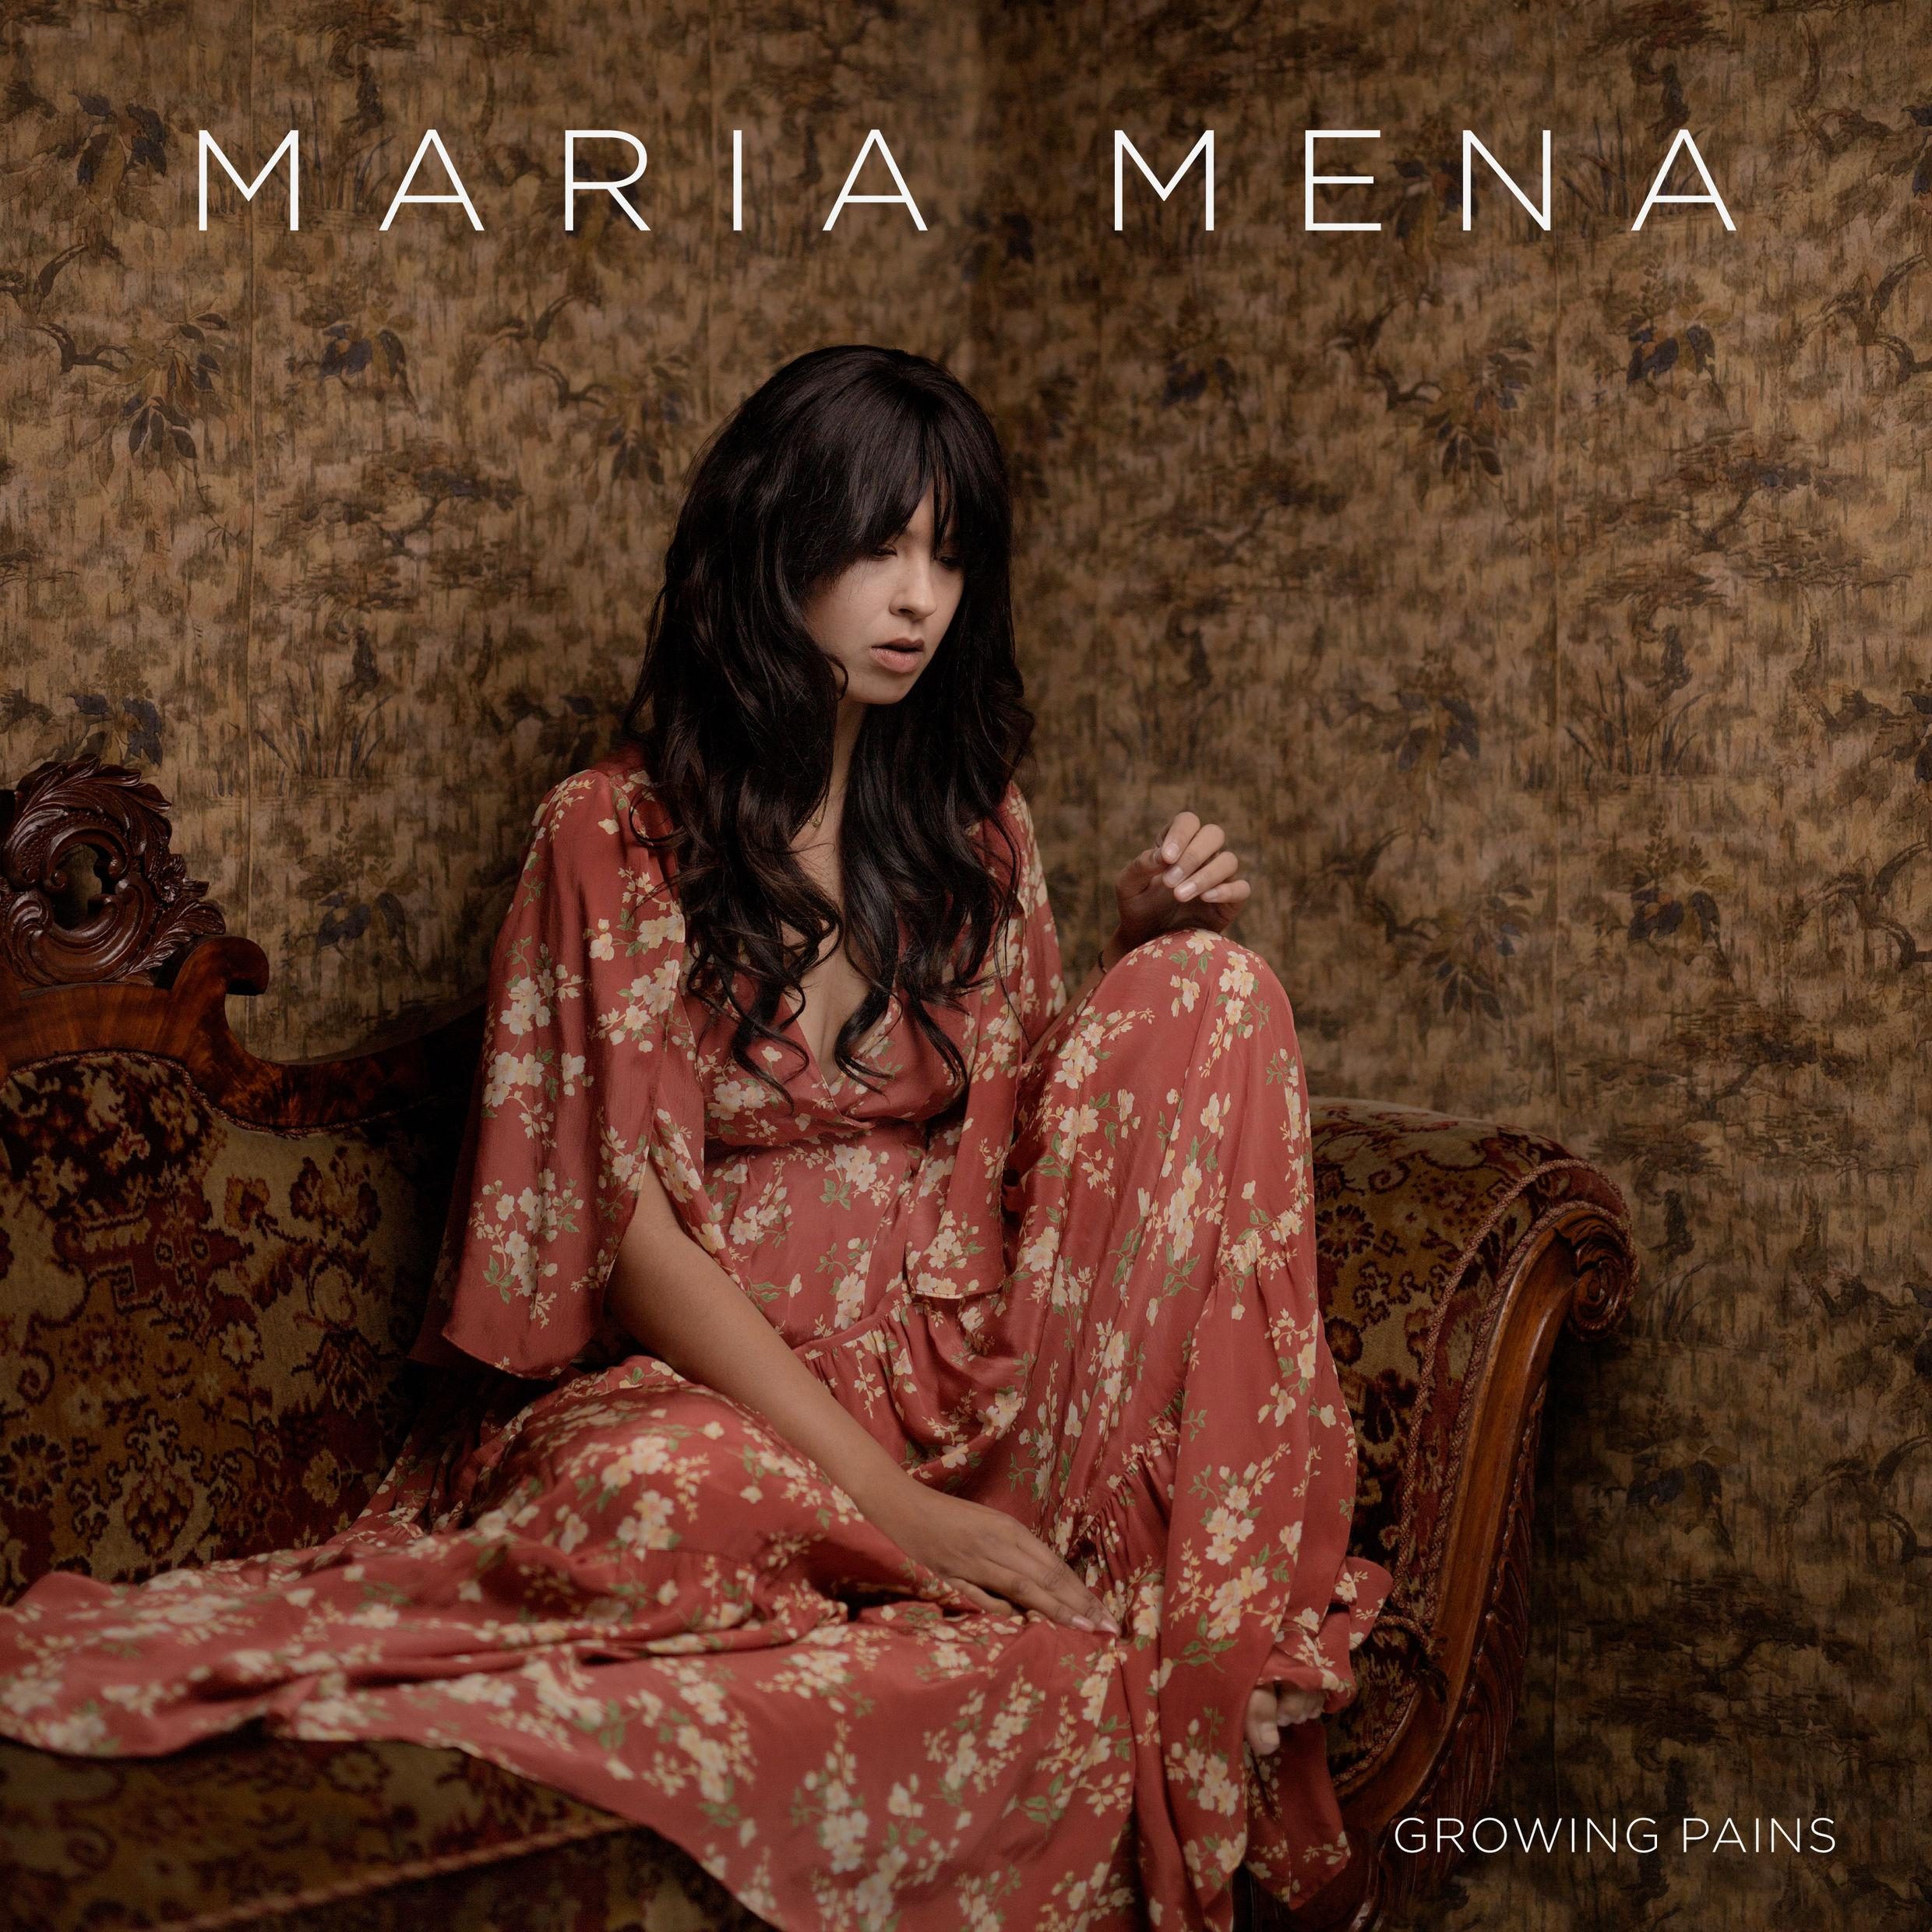 Maria Mena: Growing Pains